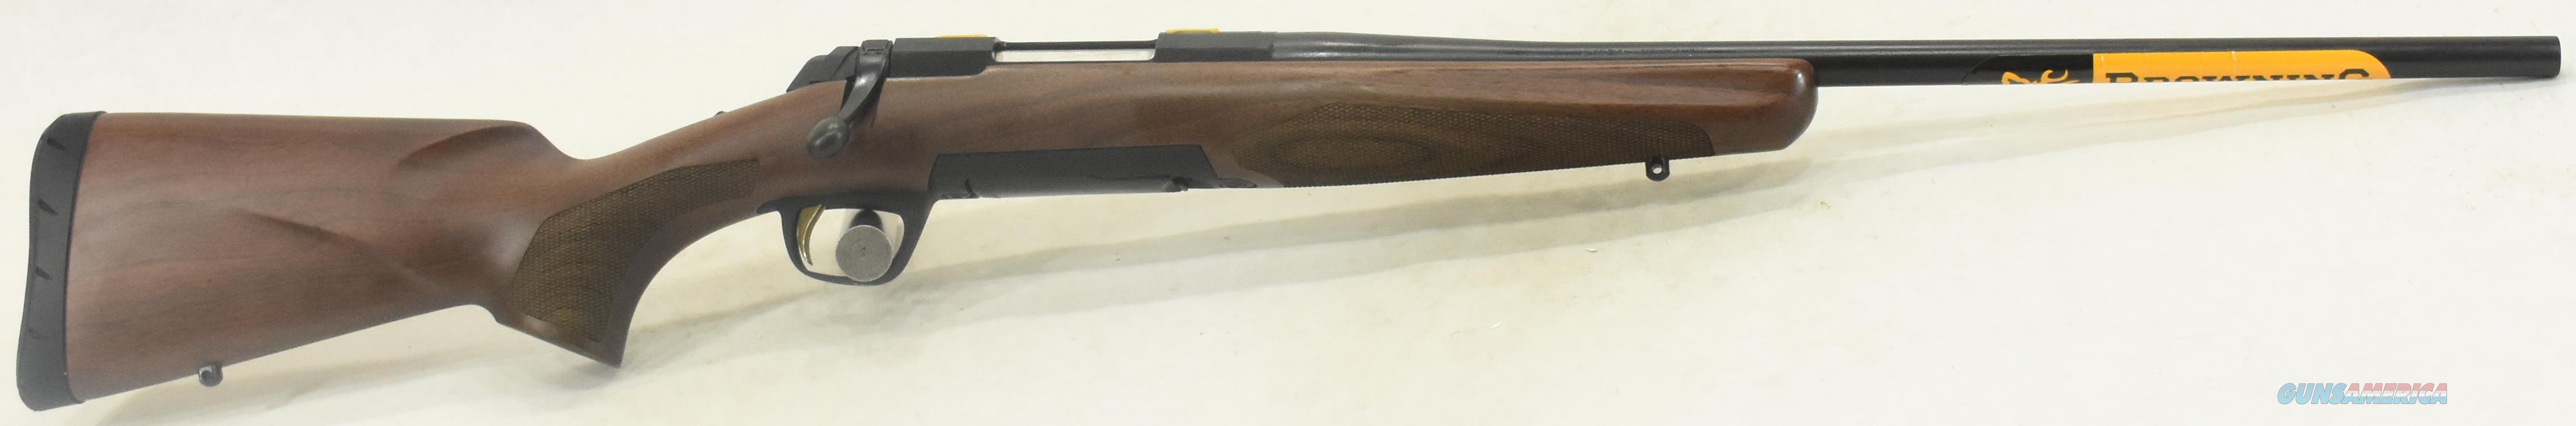 Xbolt Micro Midas 308Win 20In 035248218  Guns > Rifles > Browning Rifles > Bolt Action > Hunting > Blue